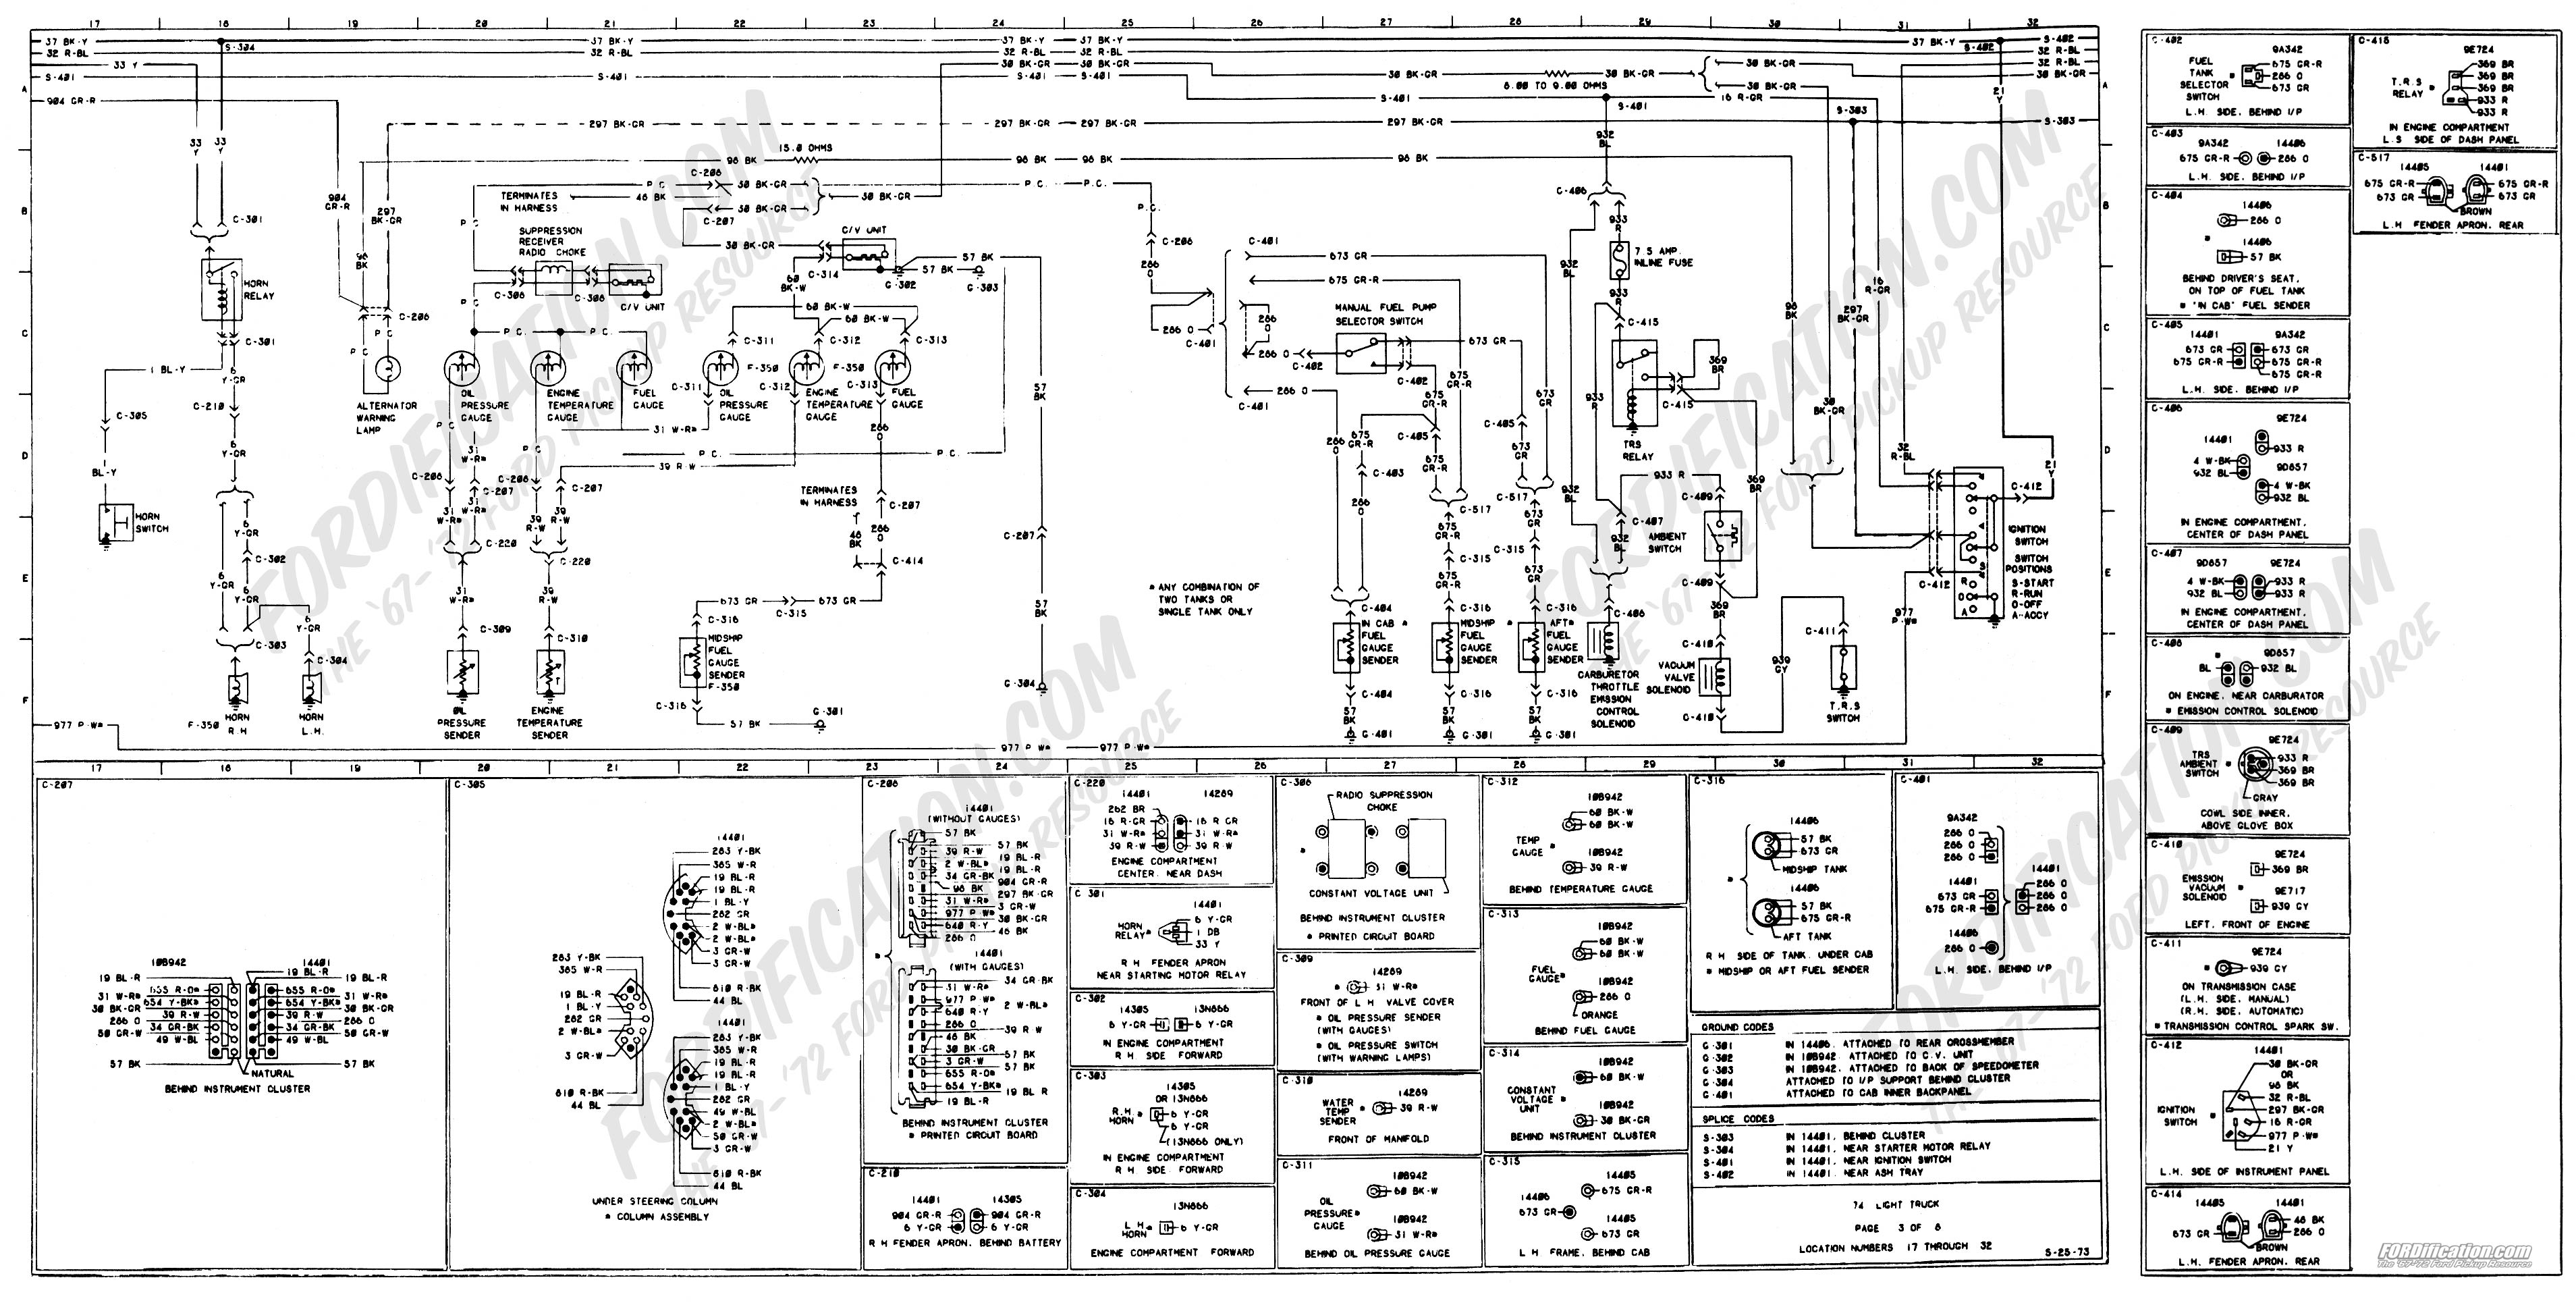 1973 1979 Ford Truck Wiring Diagrams Schematics Go Back Gt Gallery For Chevy 350 Starter Diagram Page 03